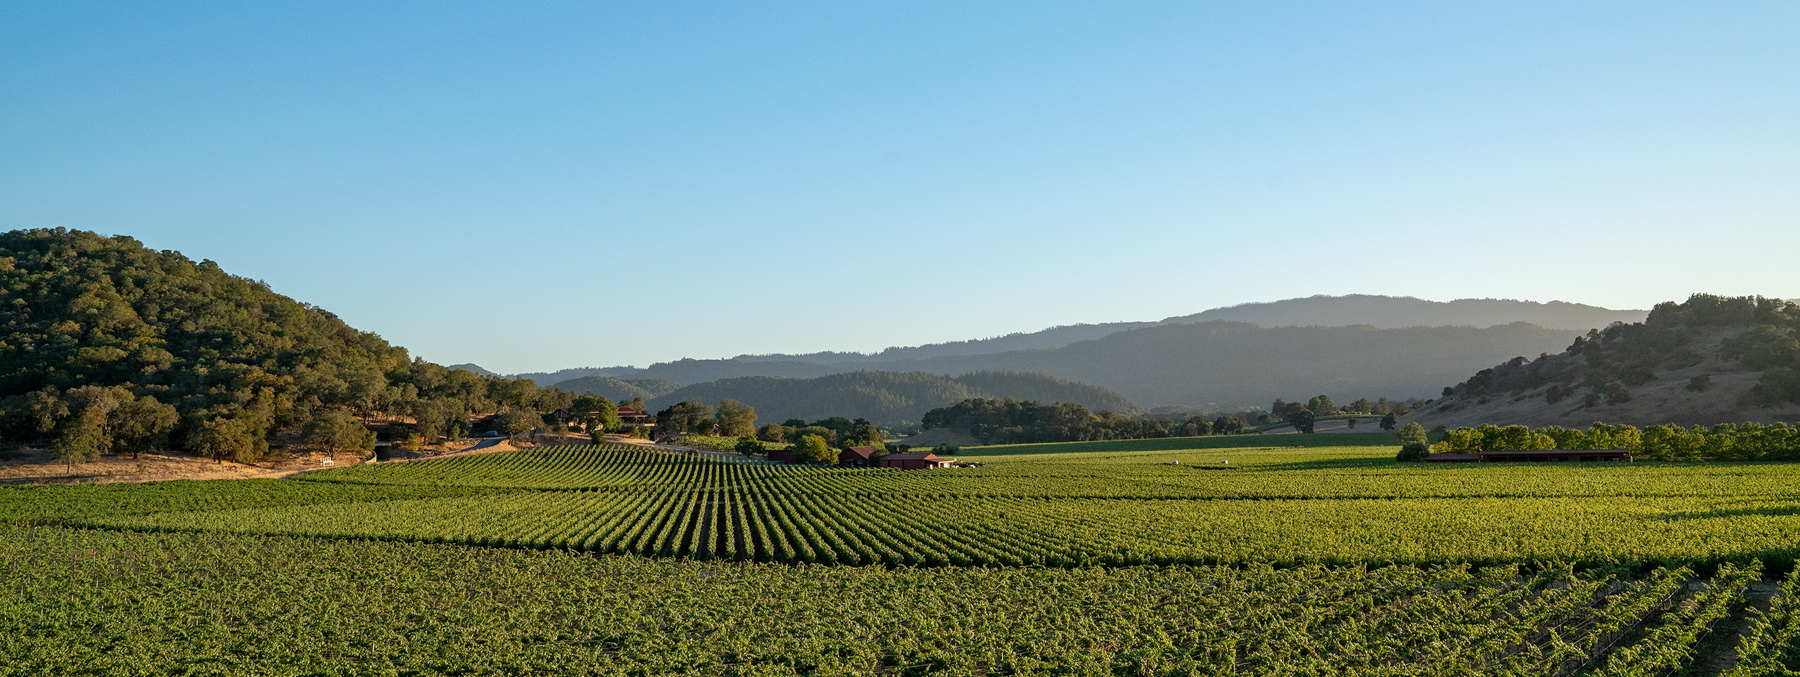 NapaValley_Web_11